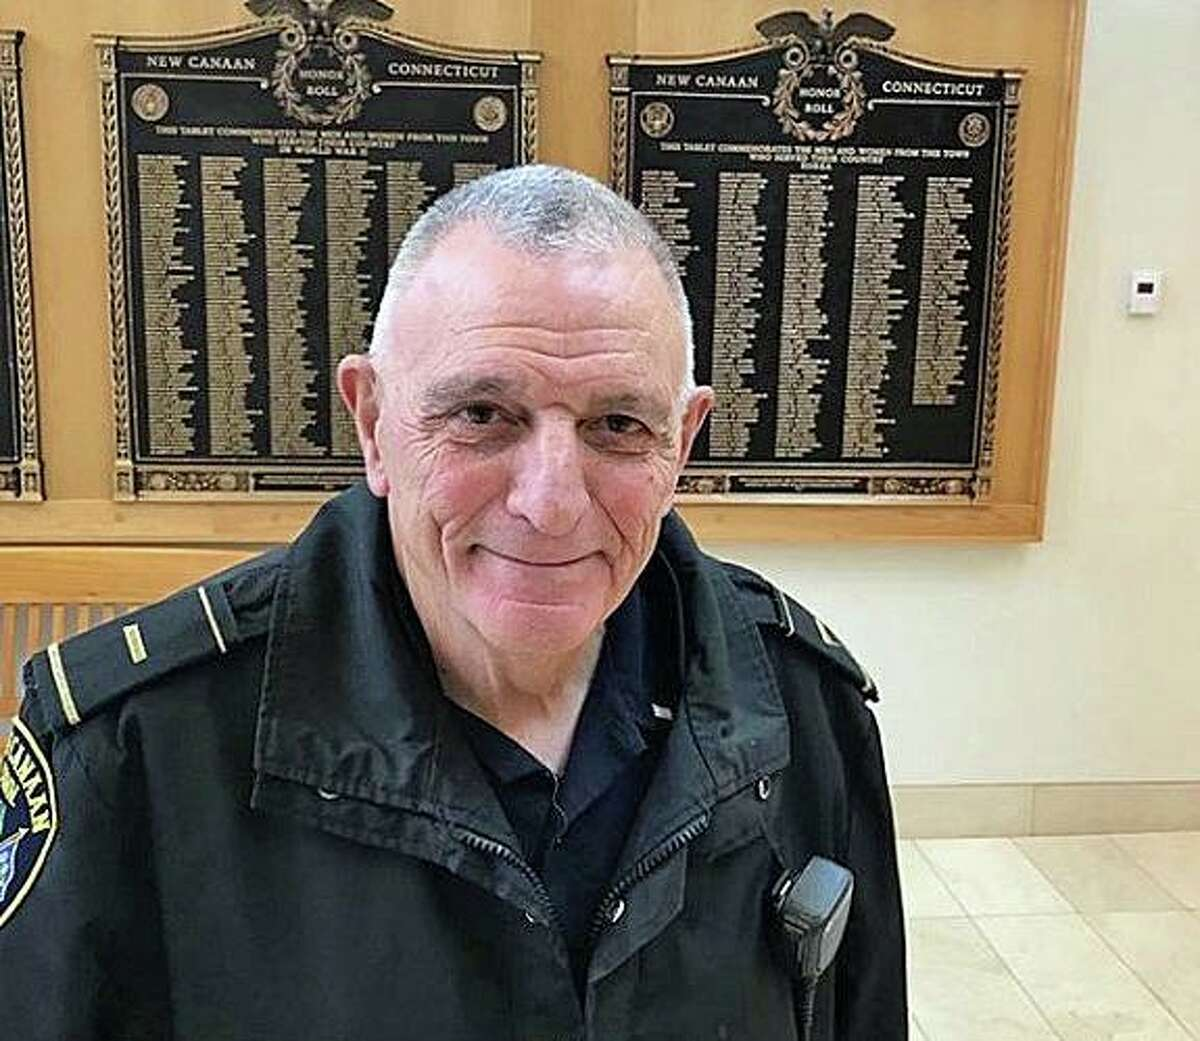 Lt. William Ferri retired on Saturday after 52 years and four months with the New Canaan Police Department.